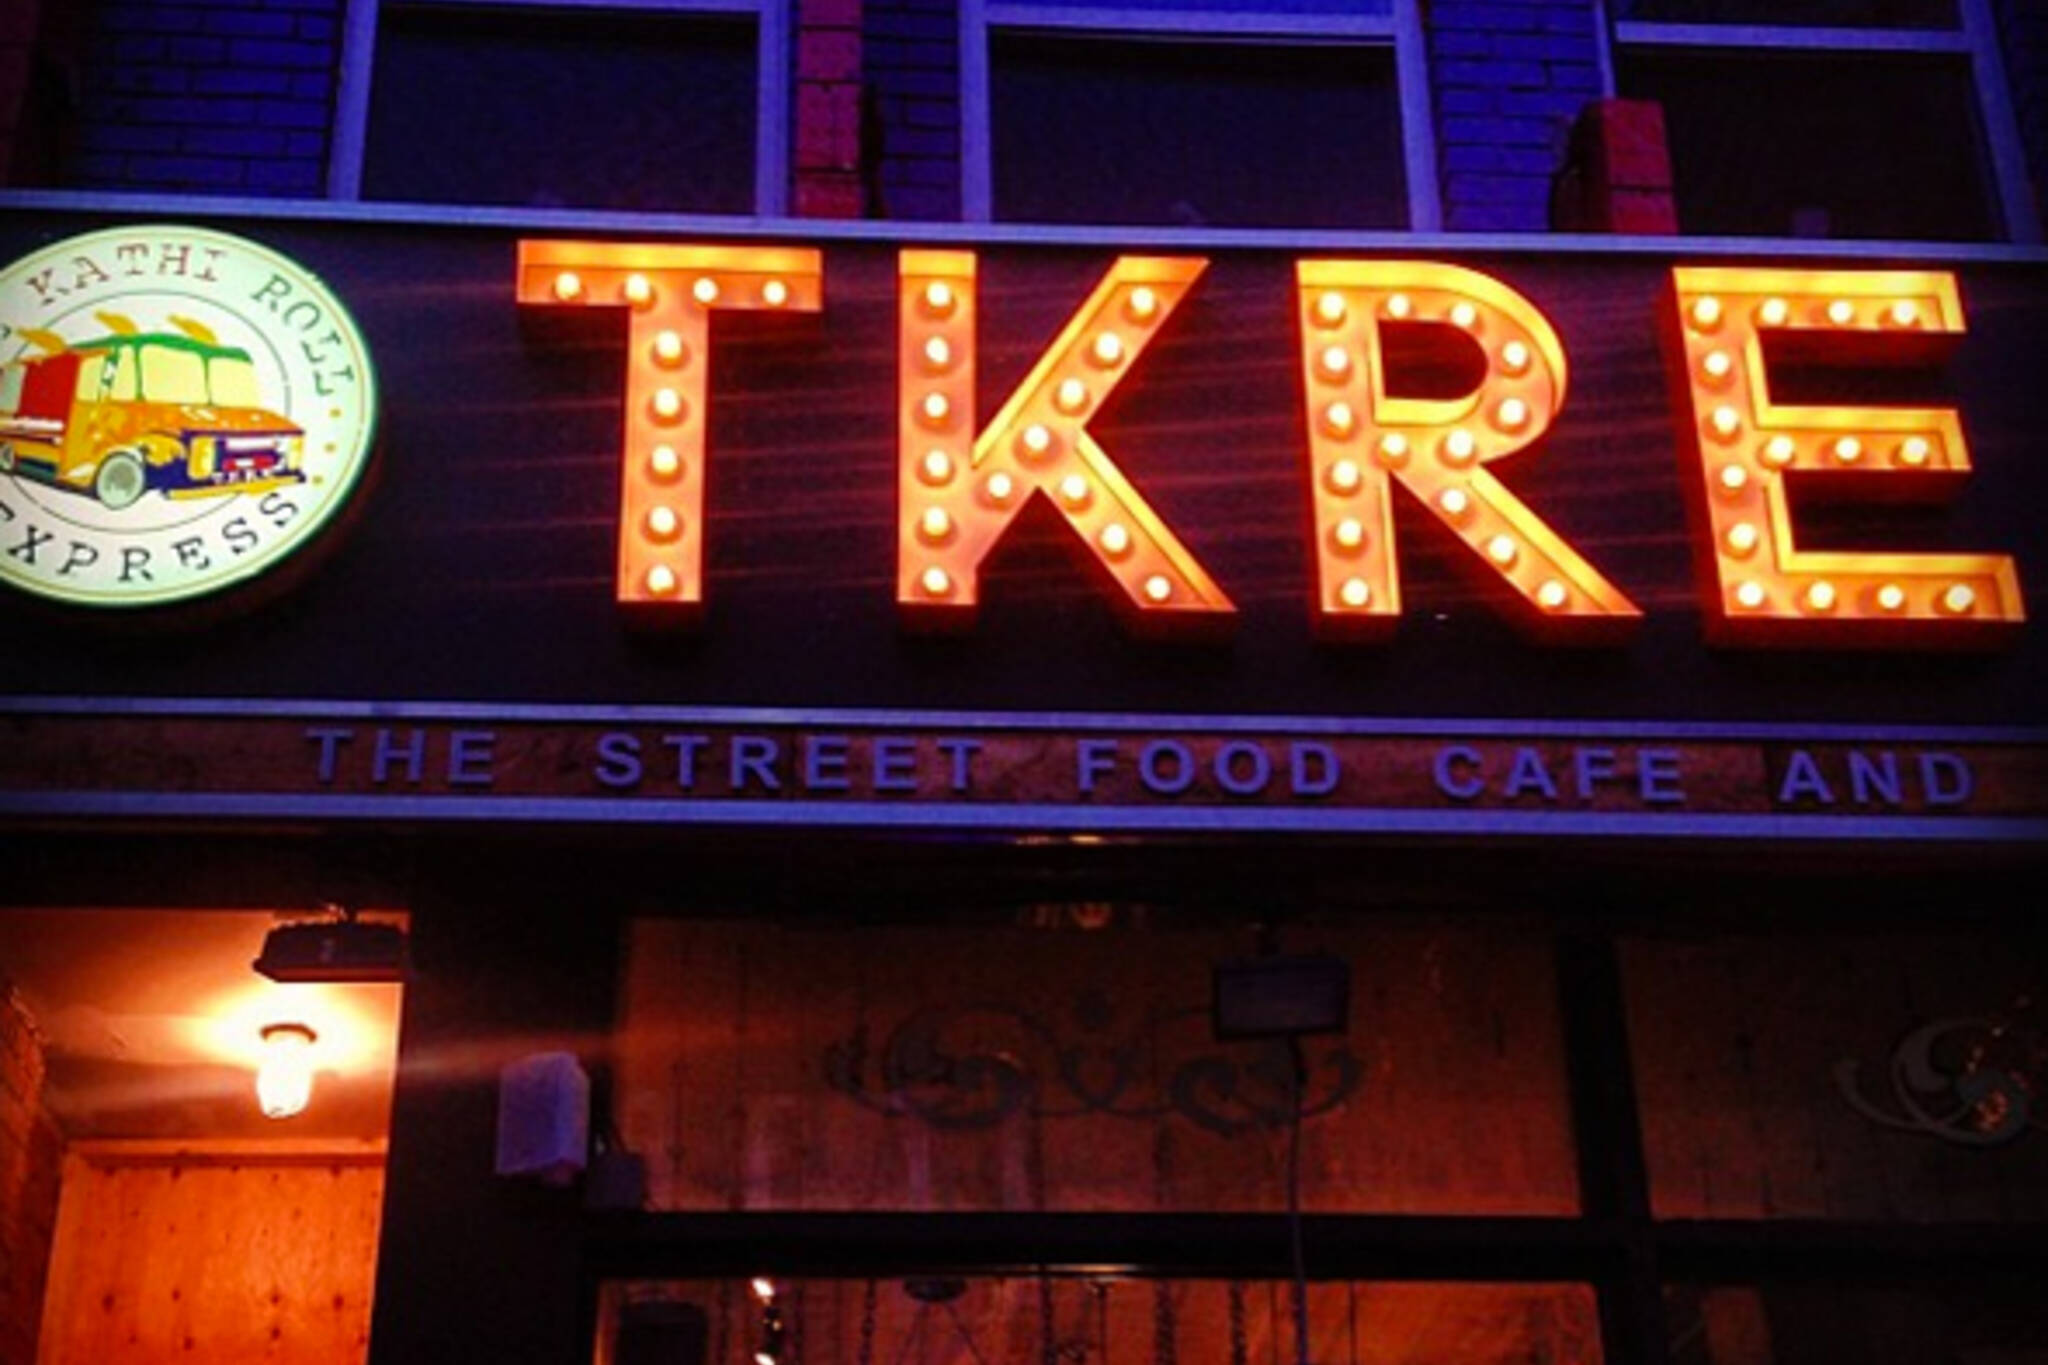 The Kathi Roll Express Toronto